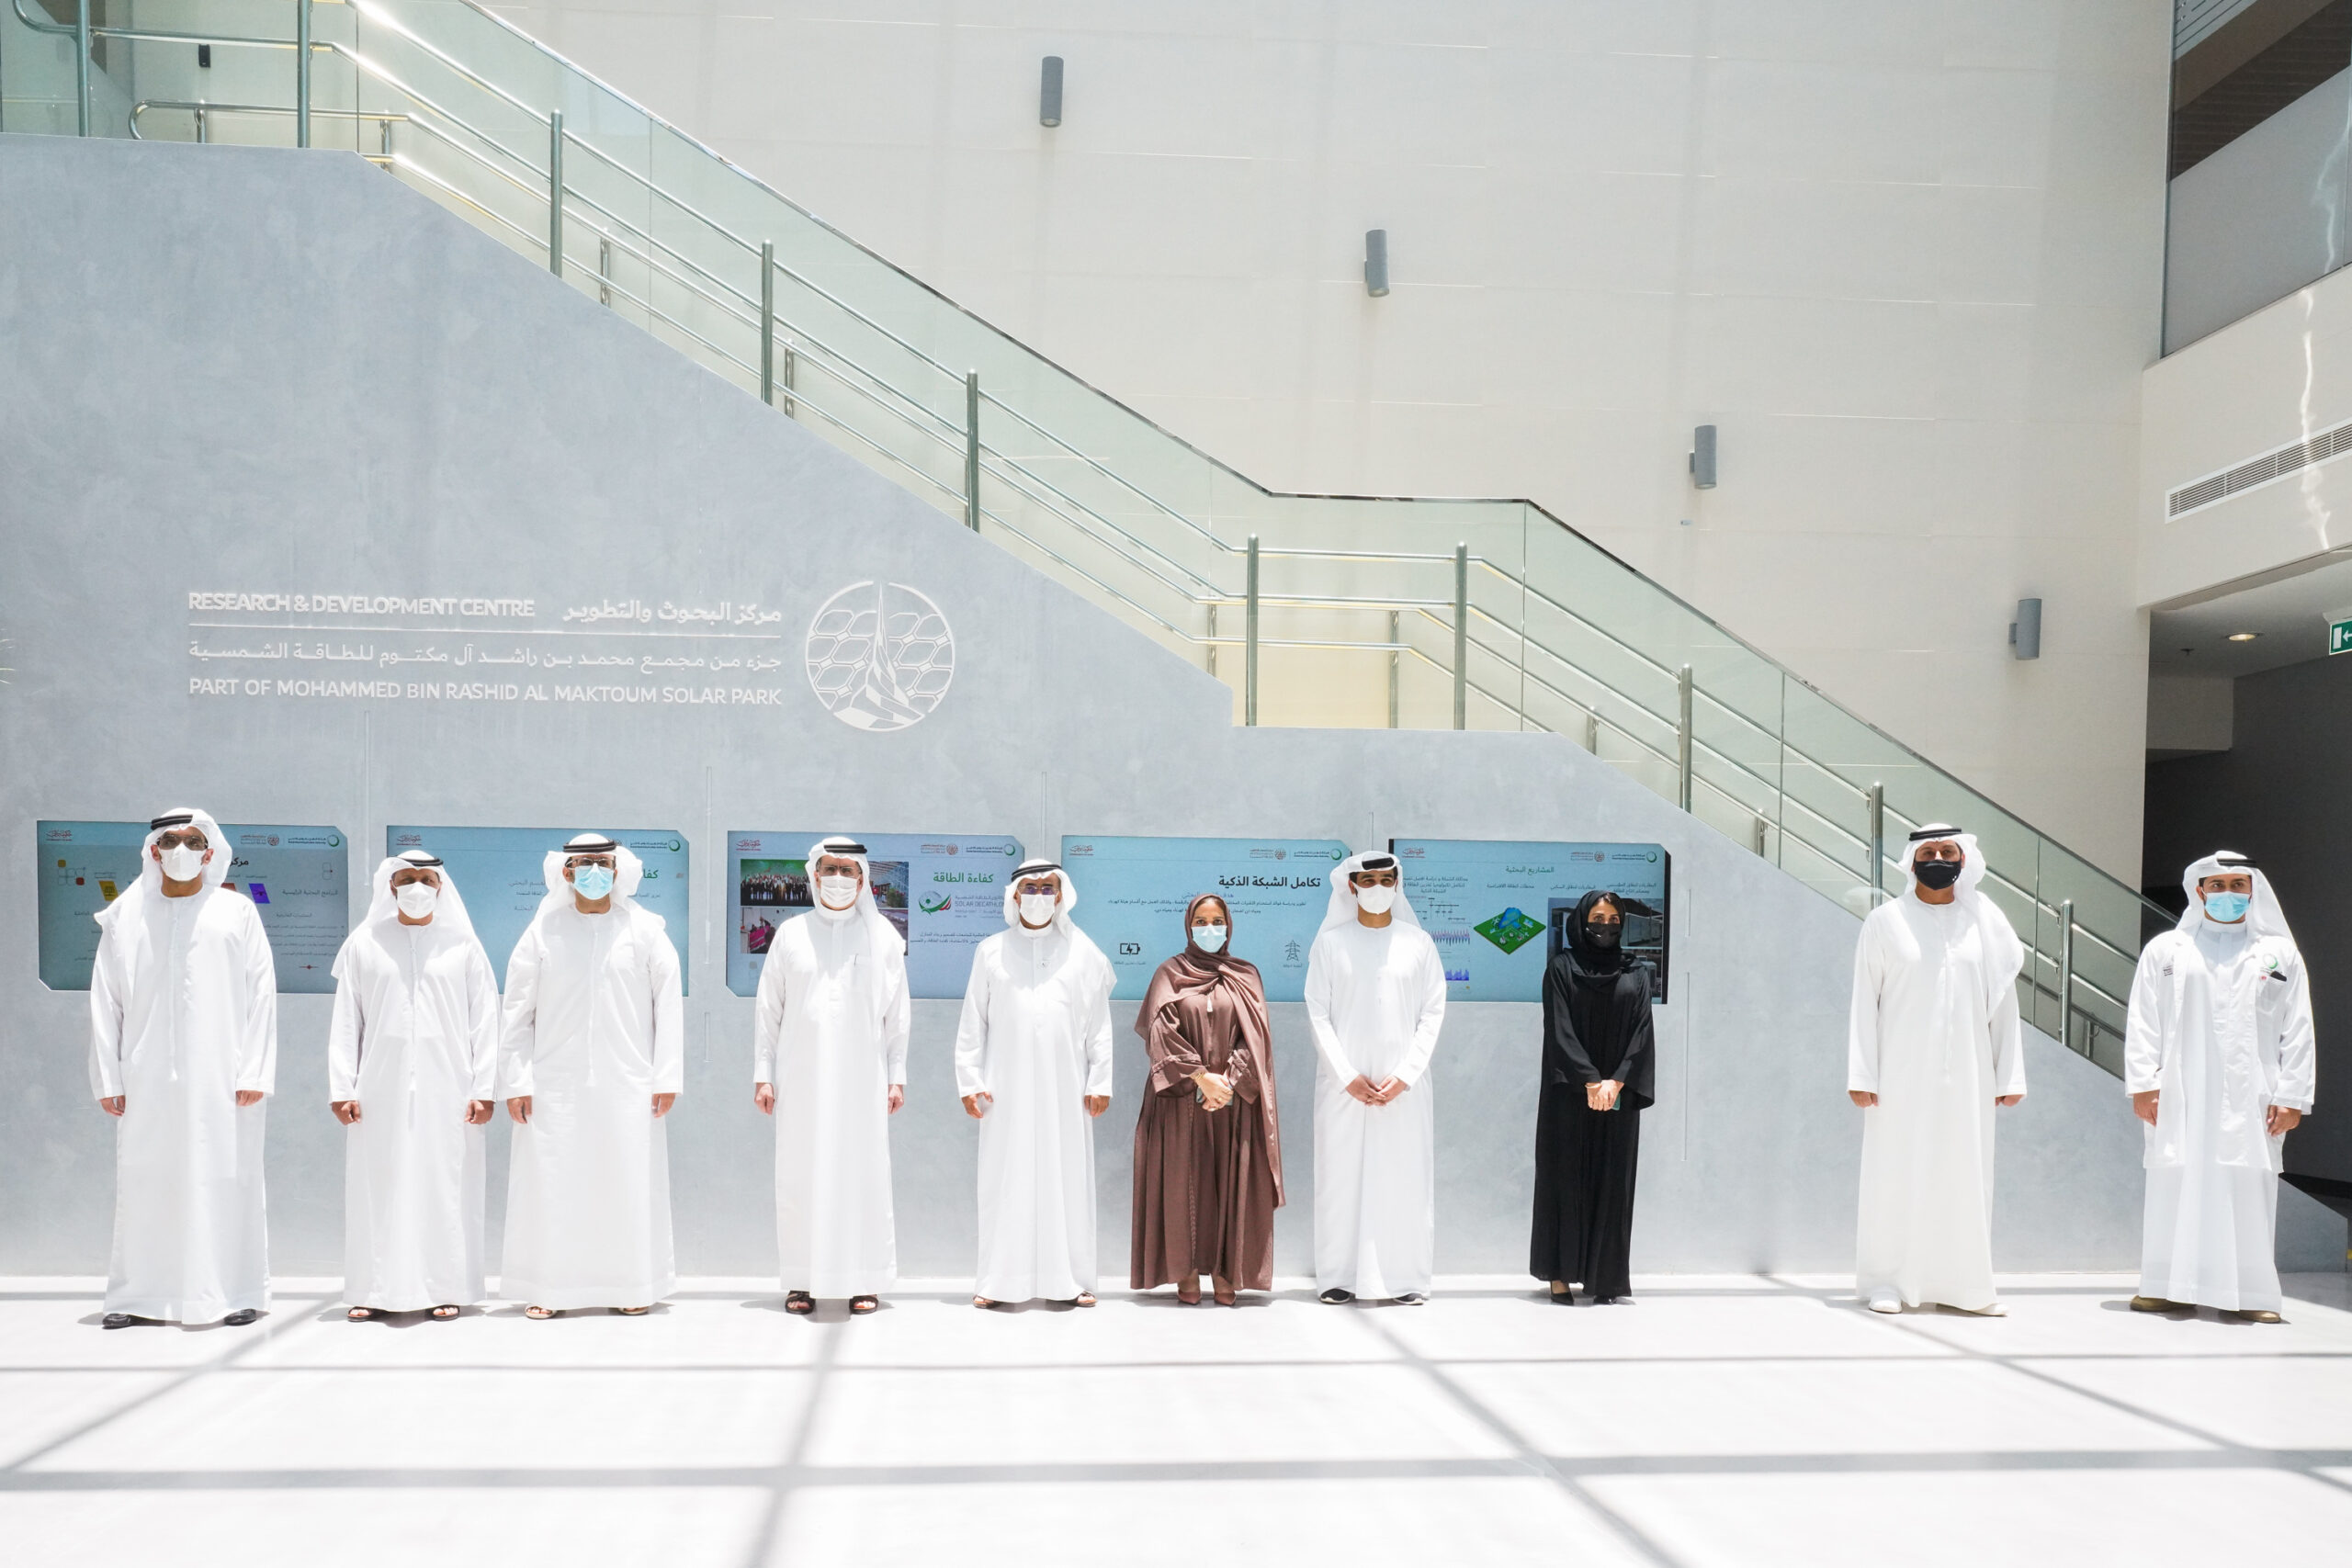 Minister of Climate Change and Environment of the UAE visits DEWA's R&D center